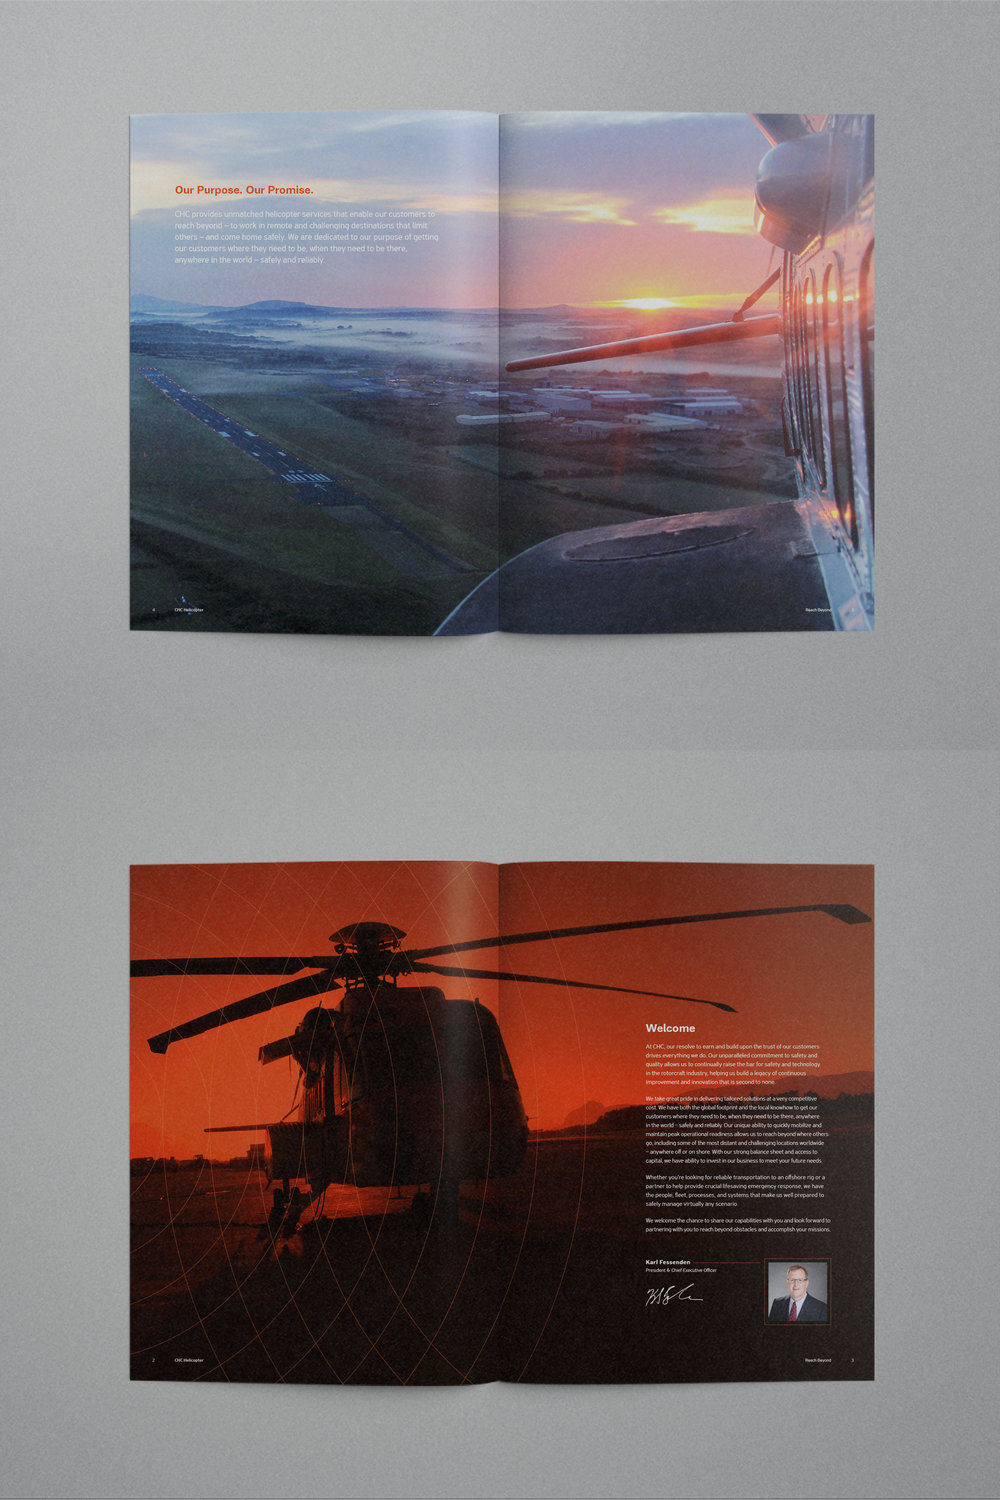 ronaldvillegas-chc-helicopter-brochure-spreads.jpg